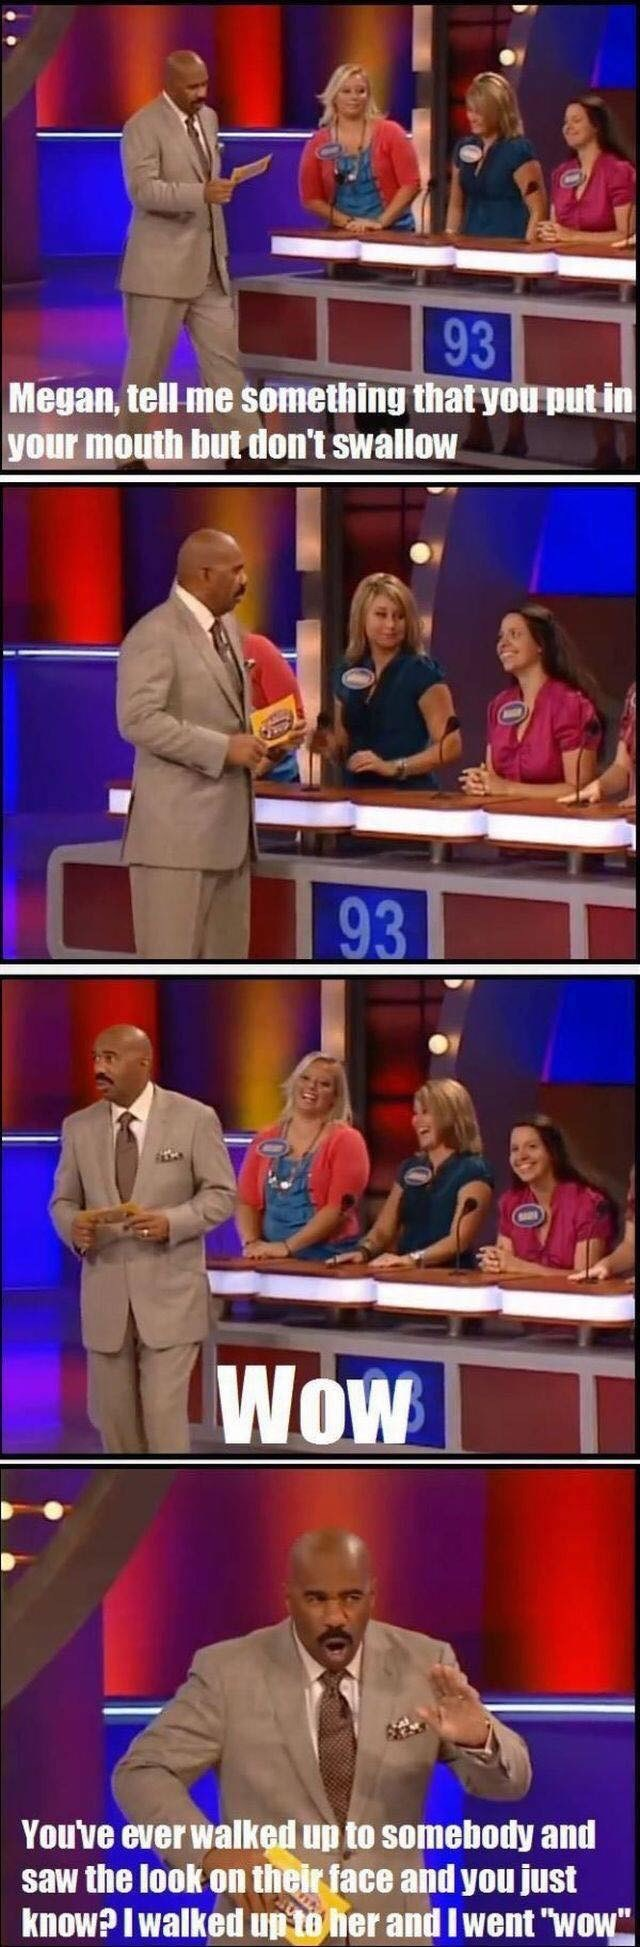 "game show - News - 93 Megan, tell me something that you put in your mouth but don't swallow 93 WoW You've ever walked up to somebody and saw the look on their face and you just know?I walked up to her and I went ""wow"